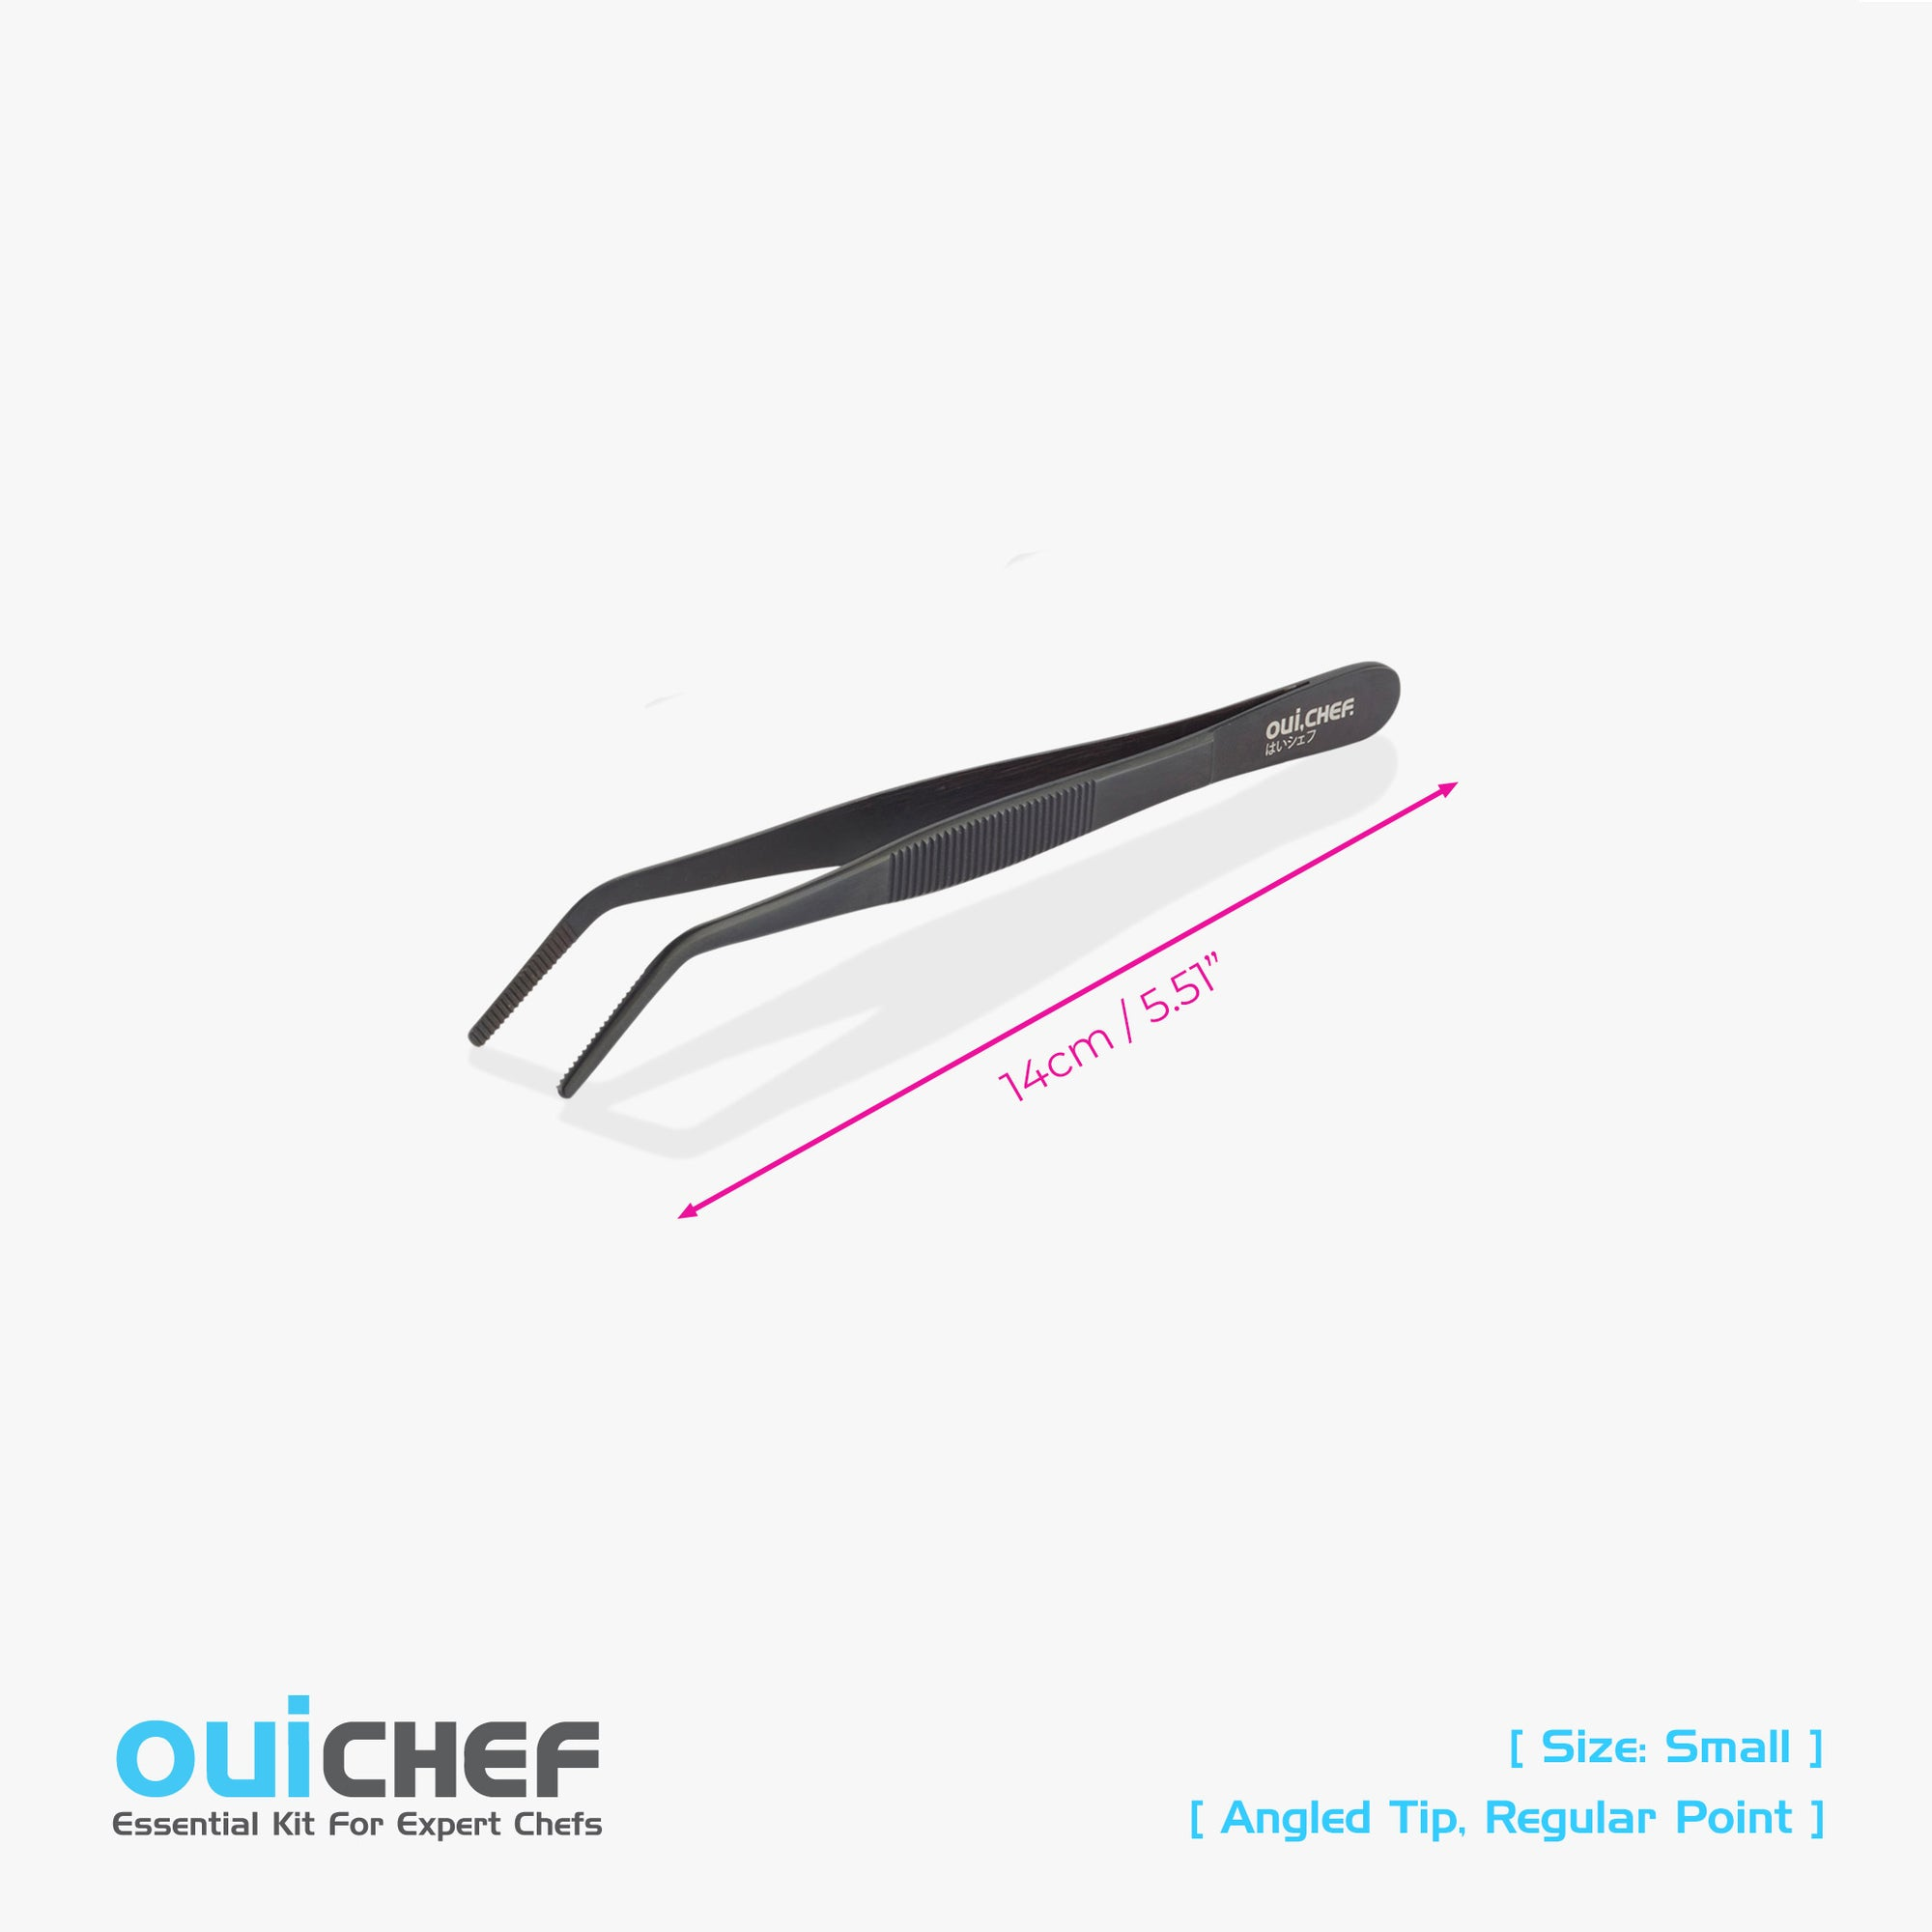 oui chef cooking kitchen tweezers 14cm Angled Tip Regular Jet Black small